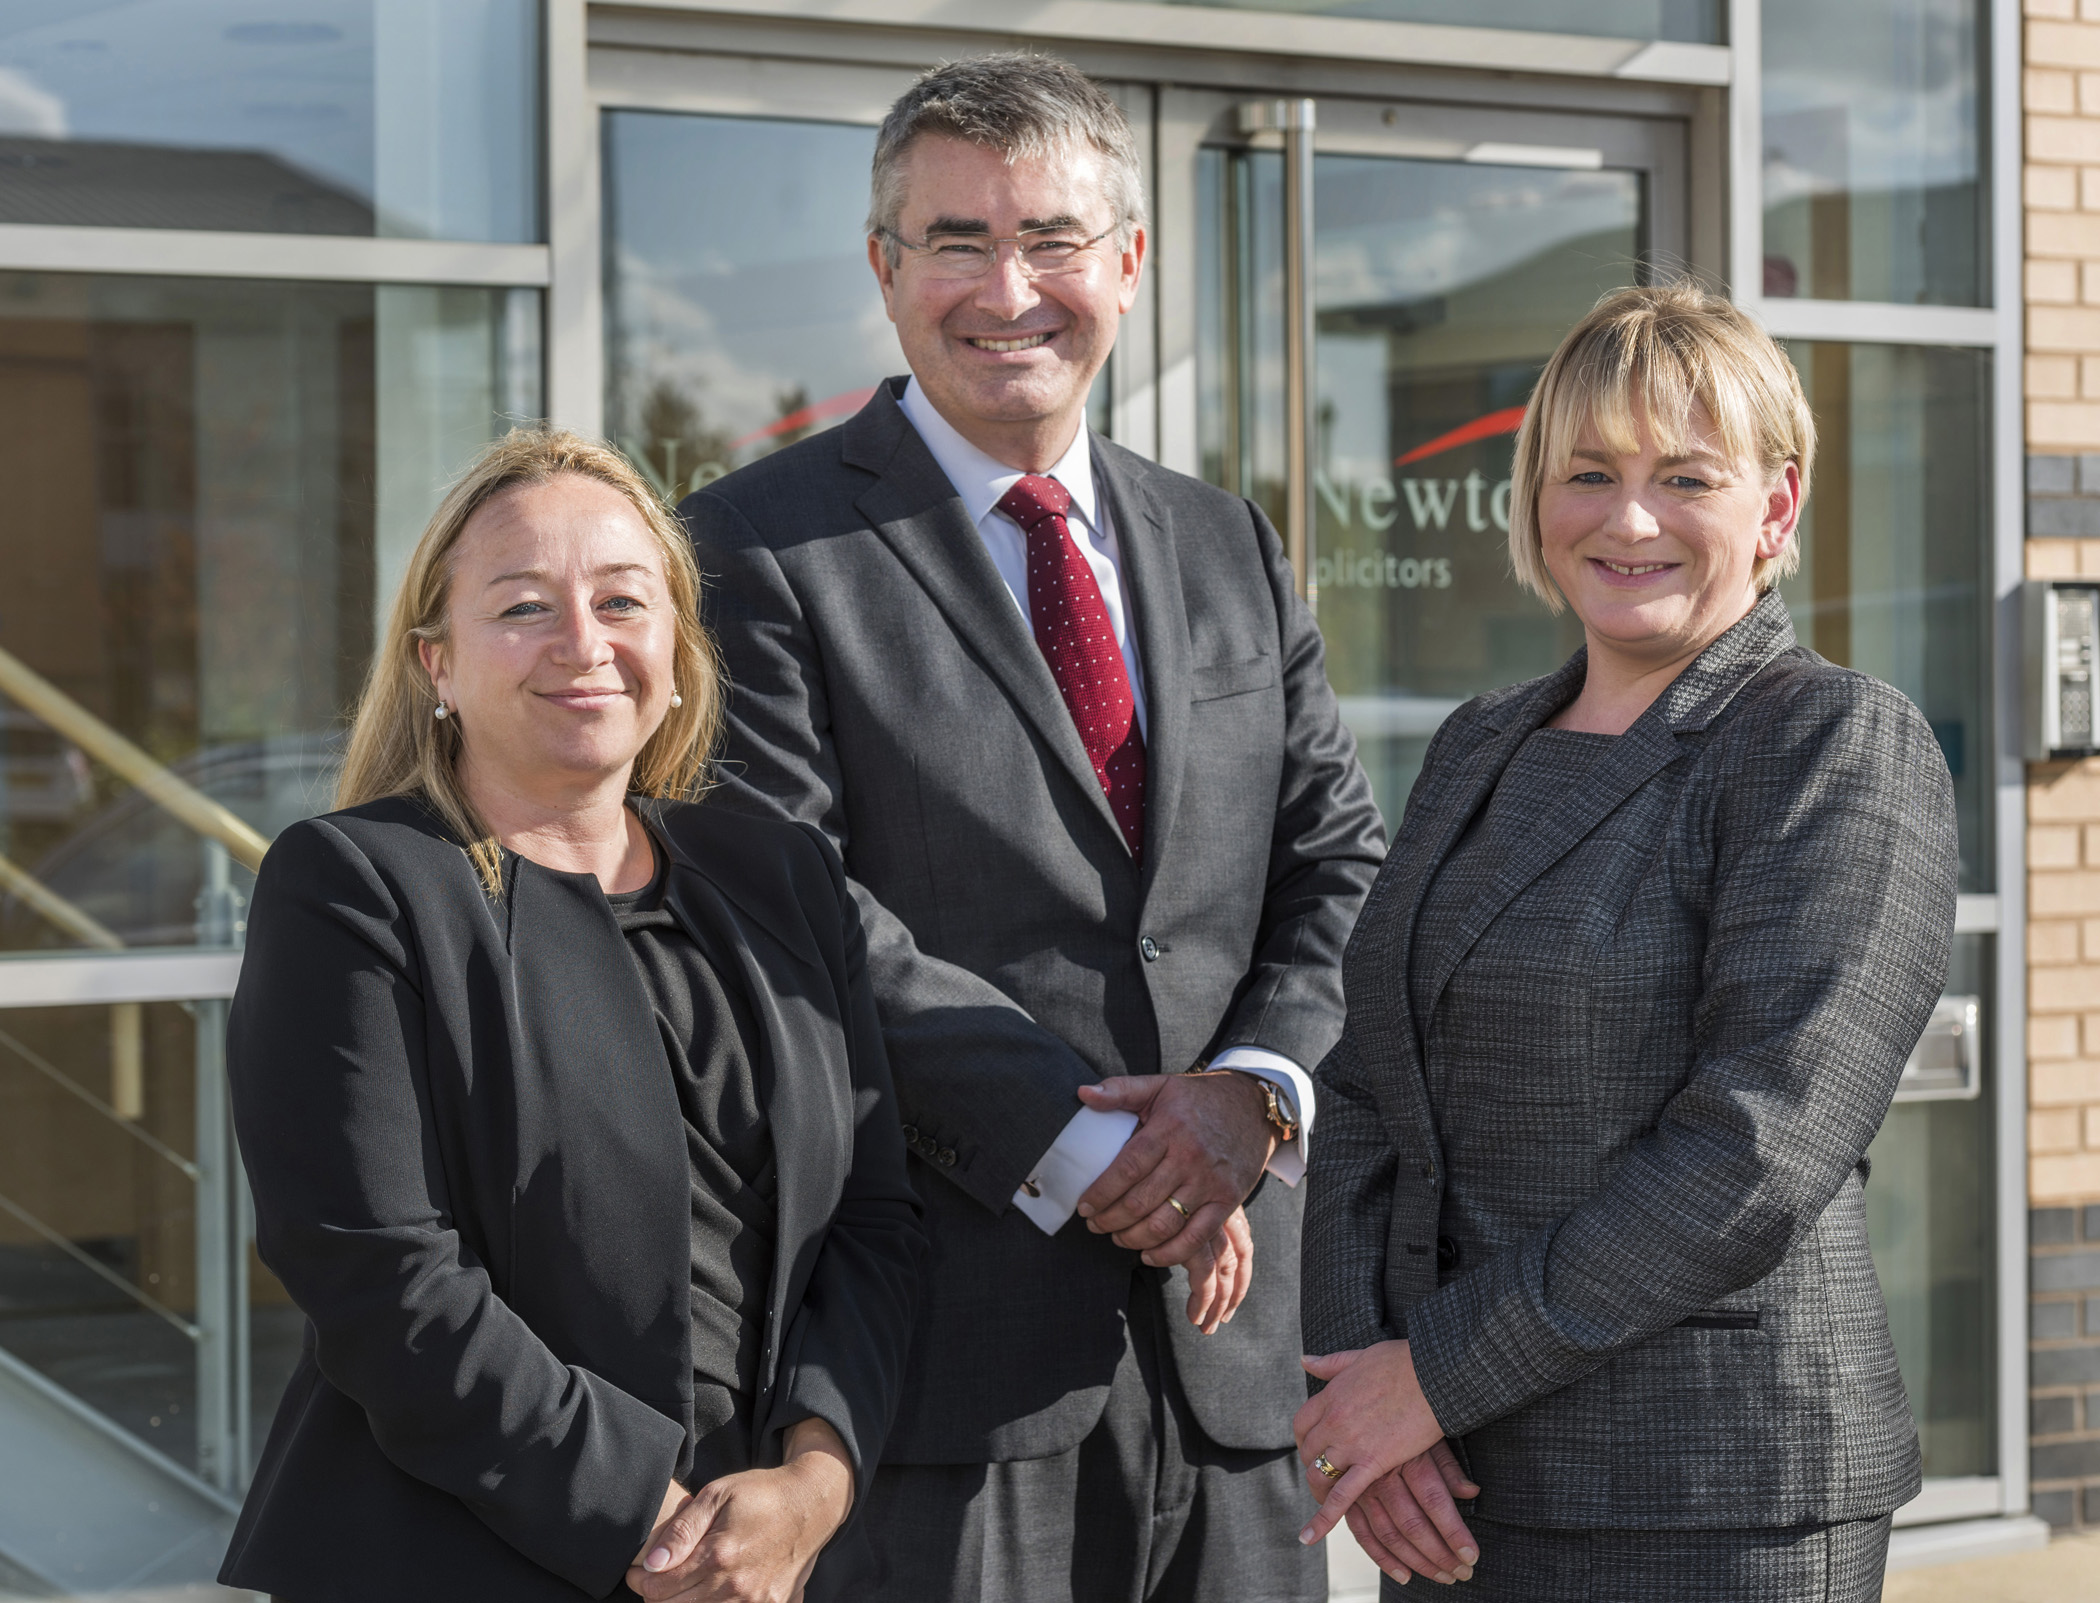 Newtons appoints two new residential lawyers